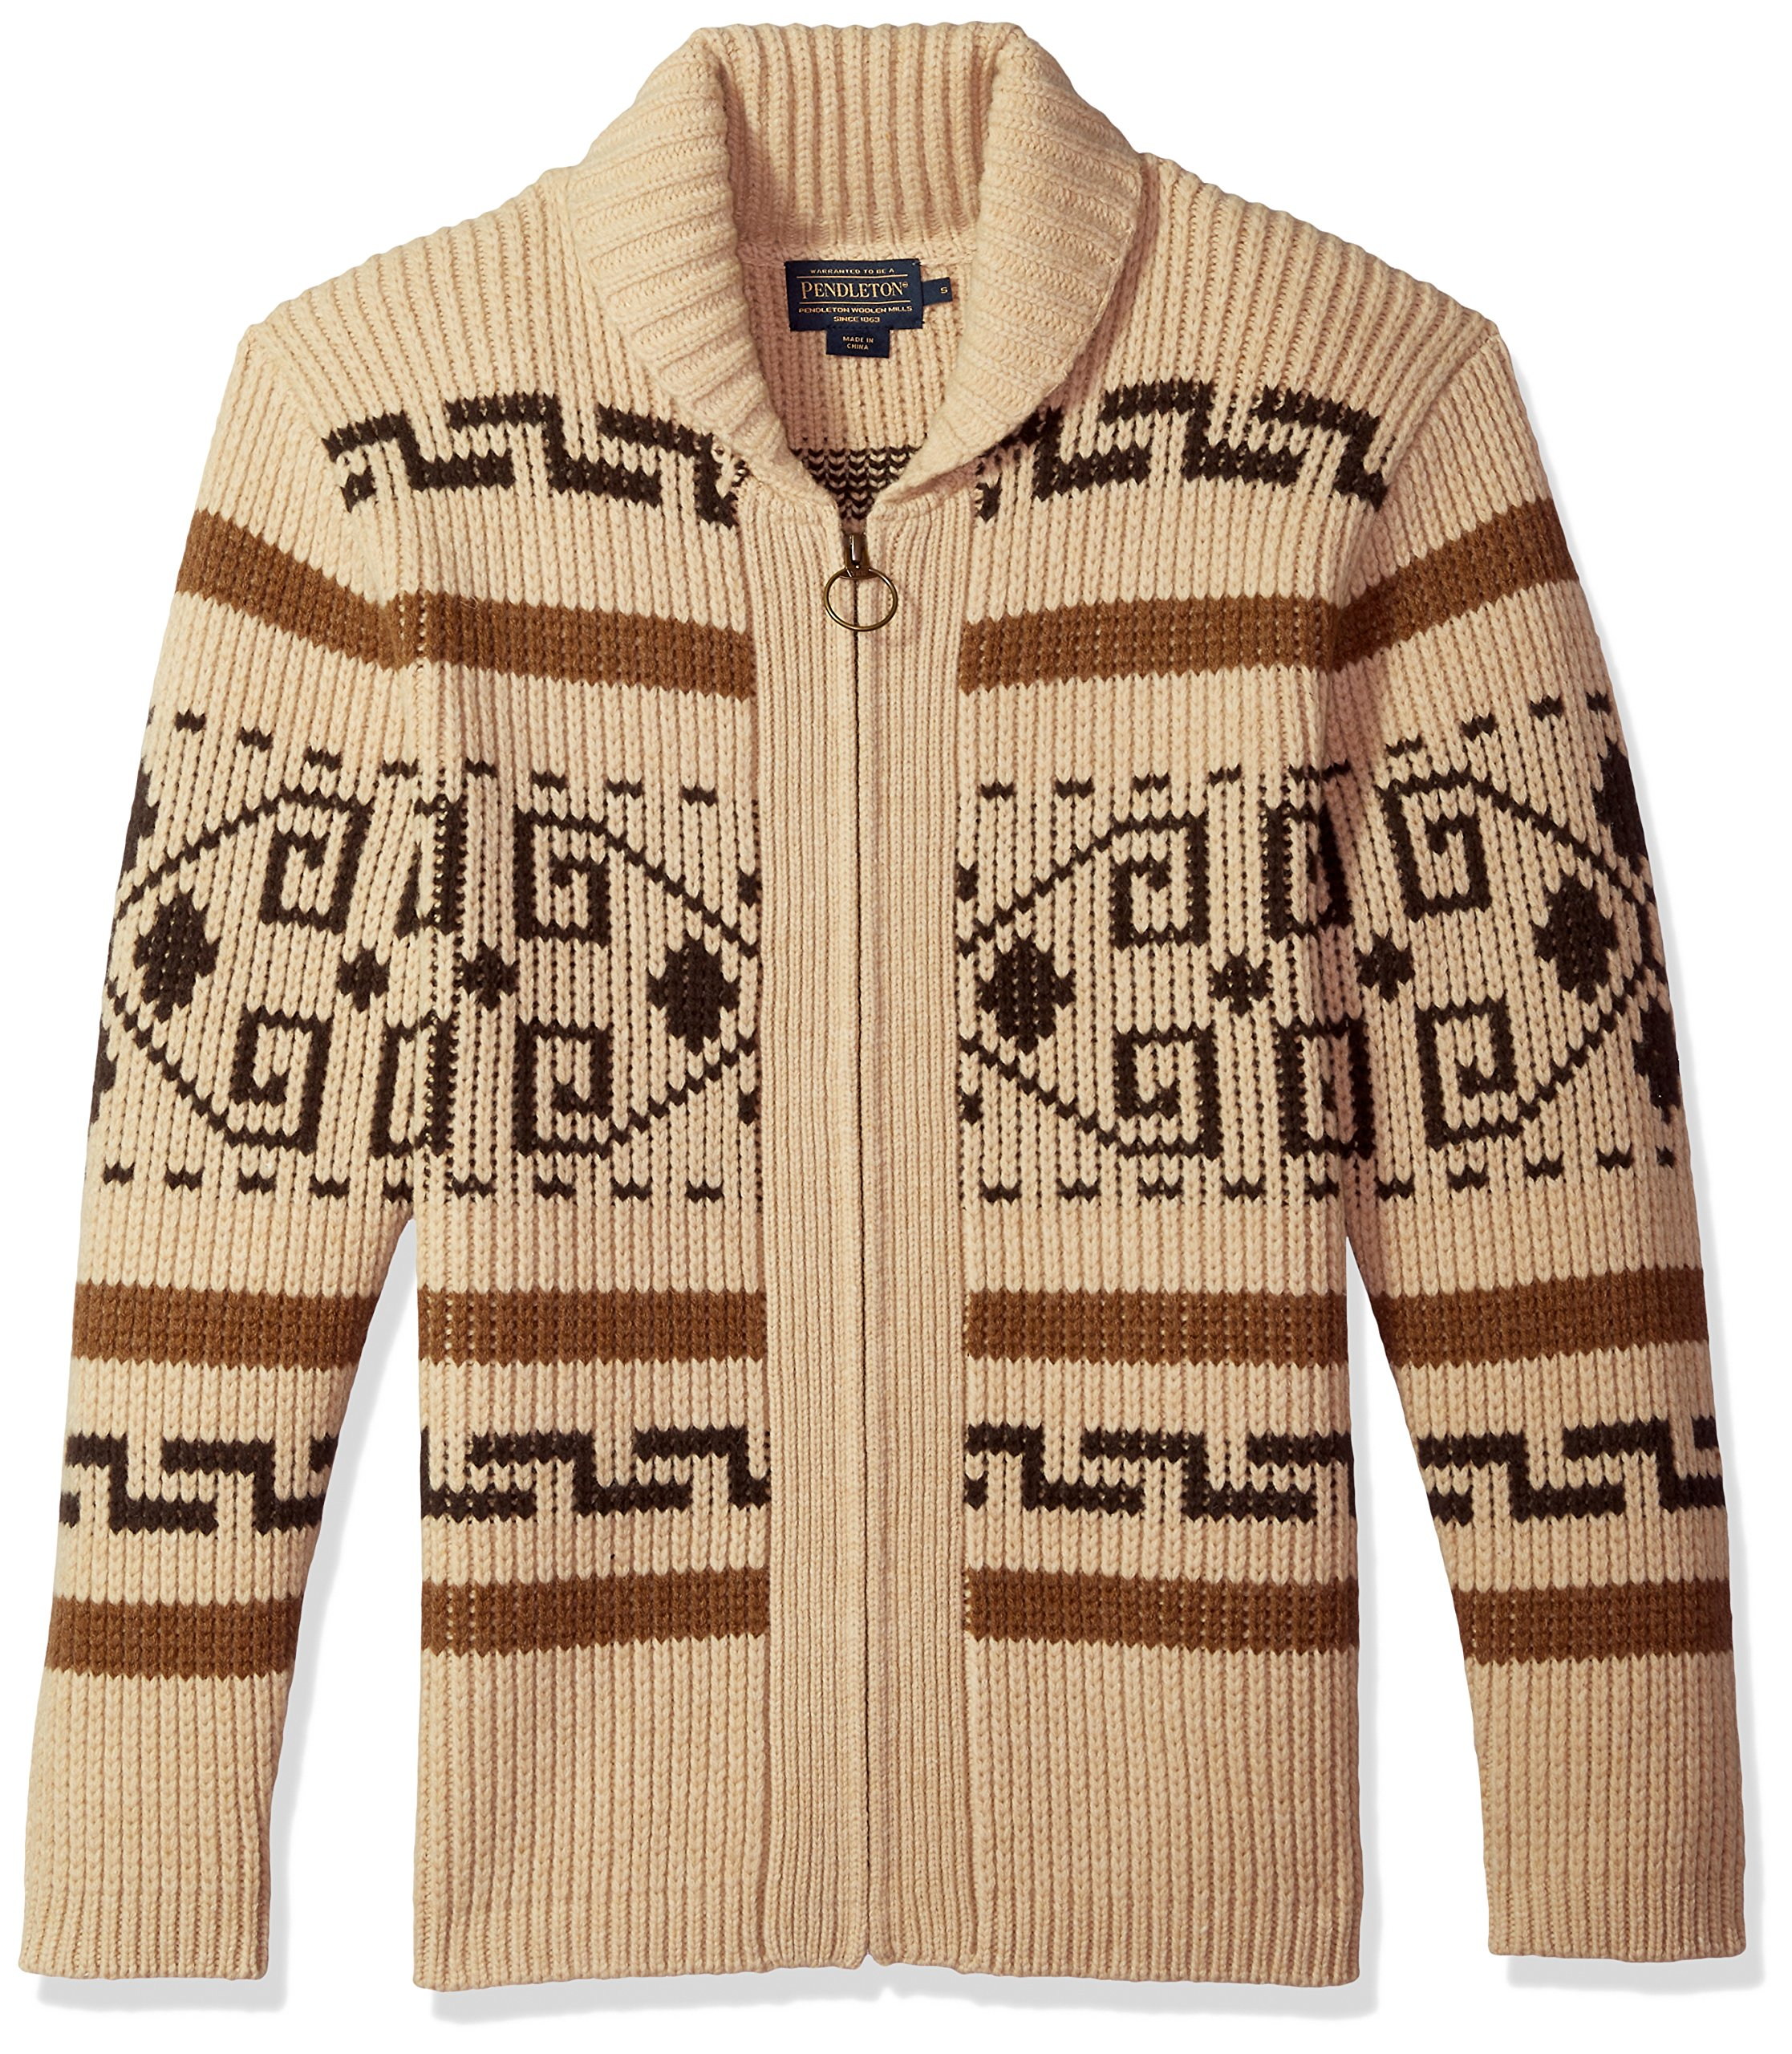 Pendleton Men's Original Westerley Sweater Tan/Brown Large